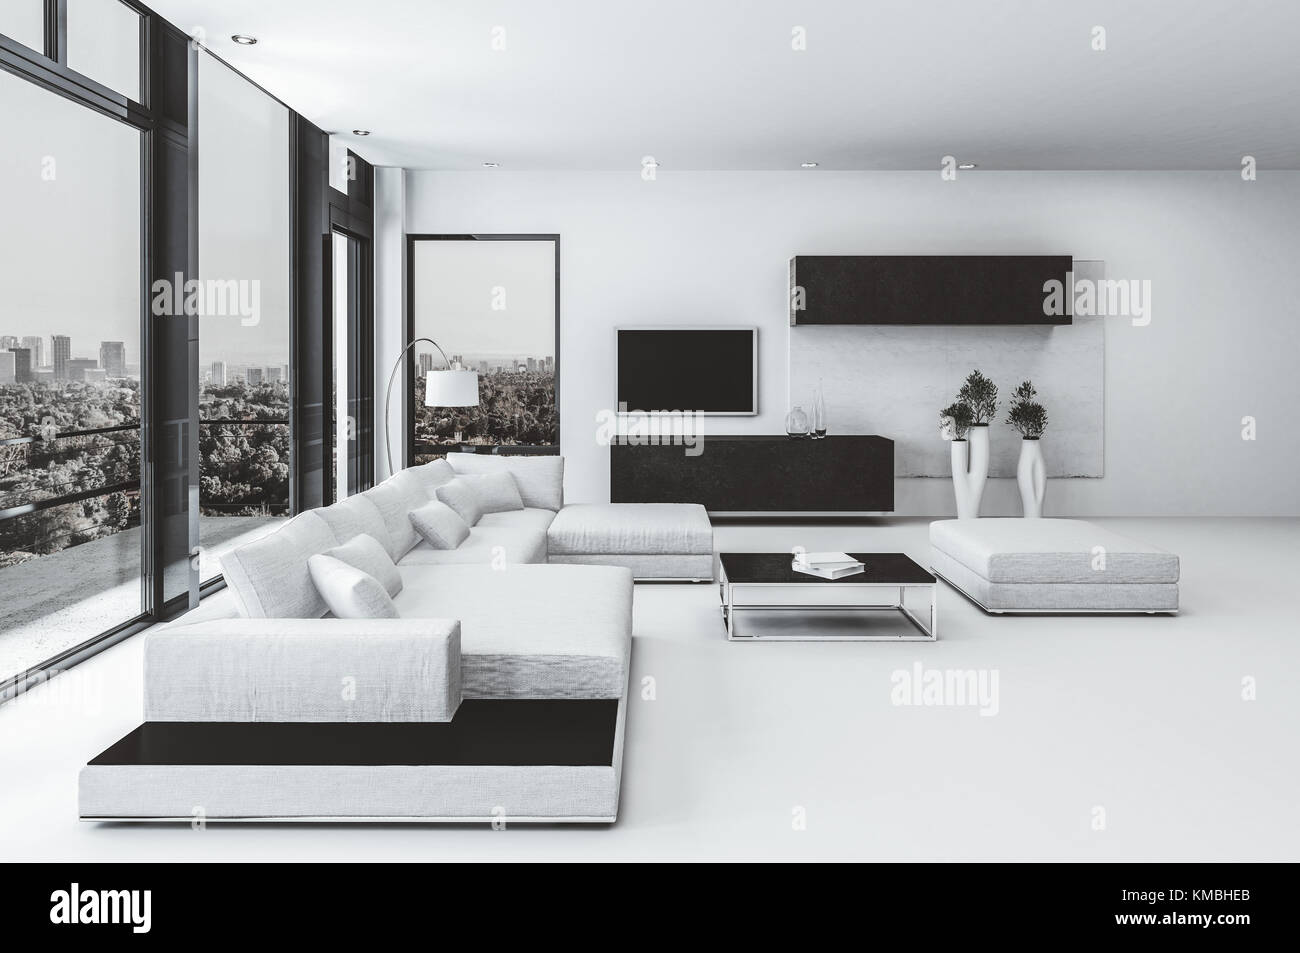 contemporary luxury living room interior with black and white decorcontemporary luxury living room interior with black and white decor, a modular lounge suite and large windows overlooking a city with a door to an out